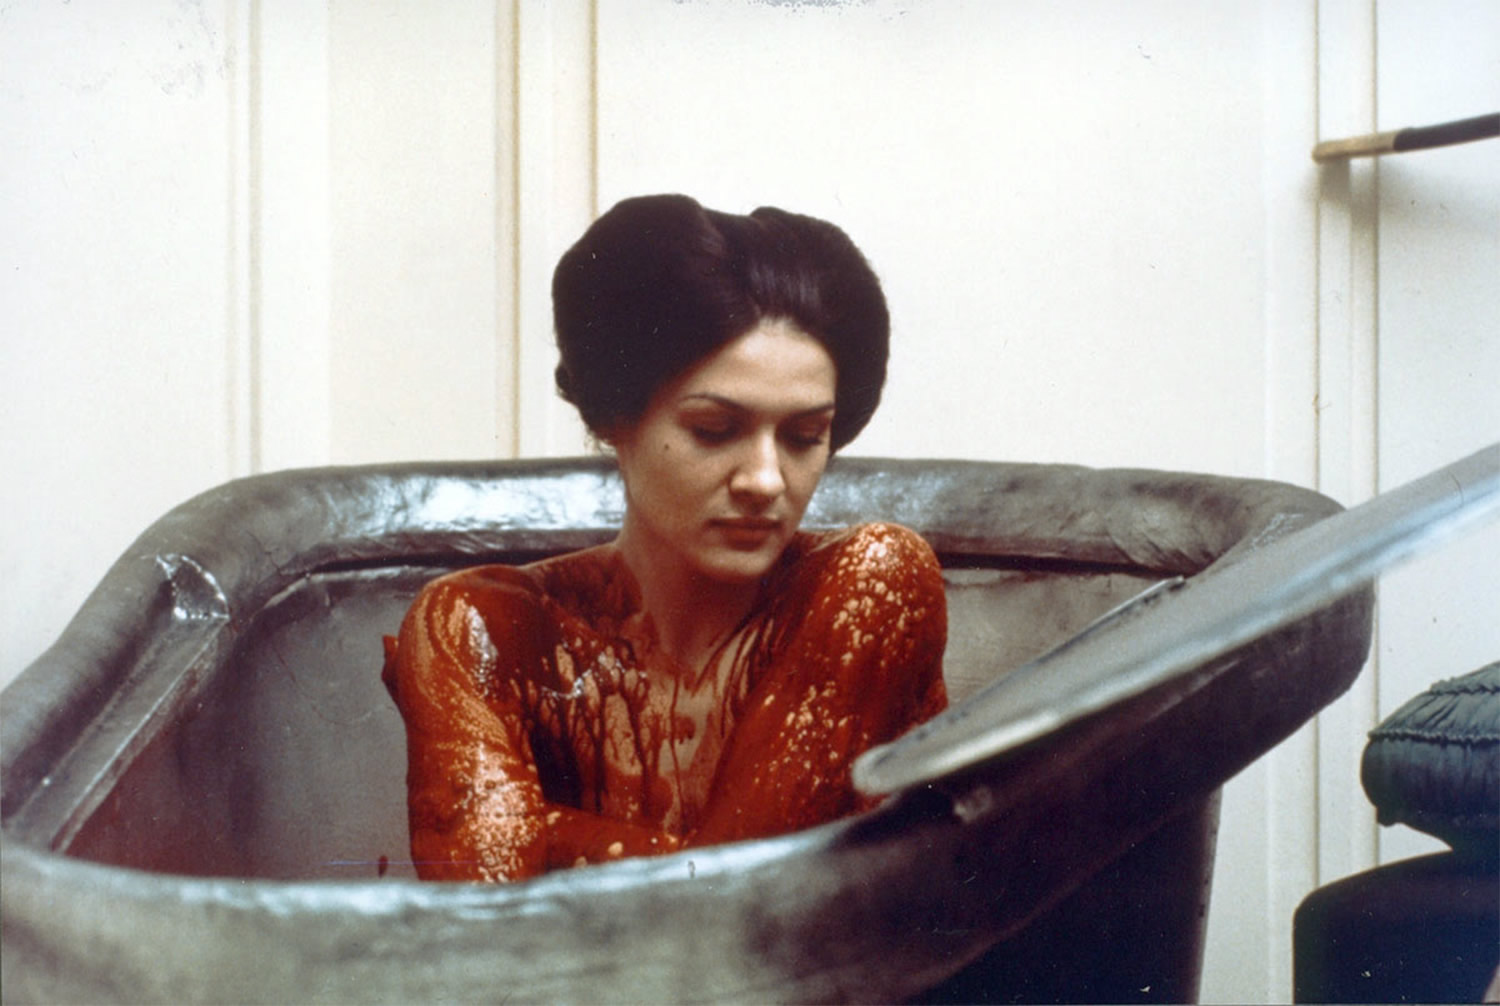 paloma picasso bathing in blood, immortal tales, Contes immoraux